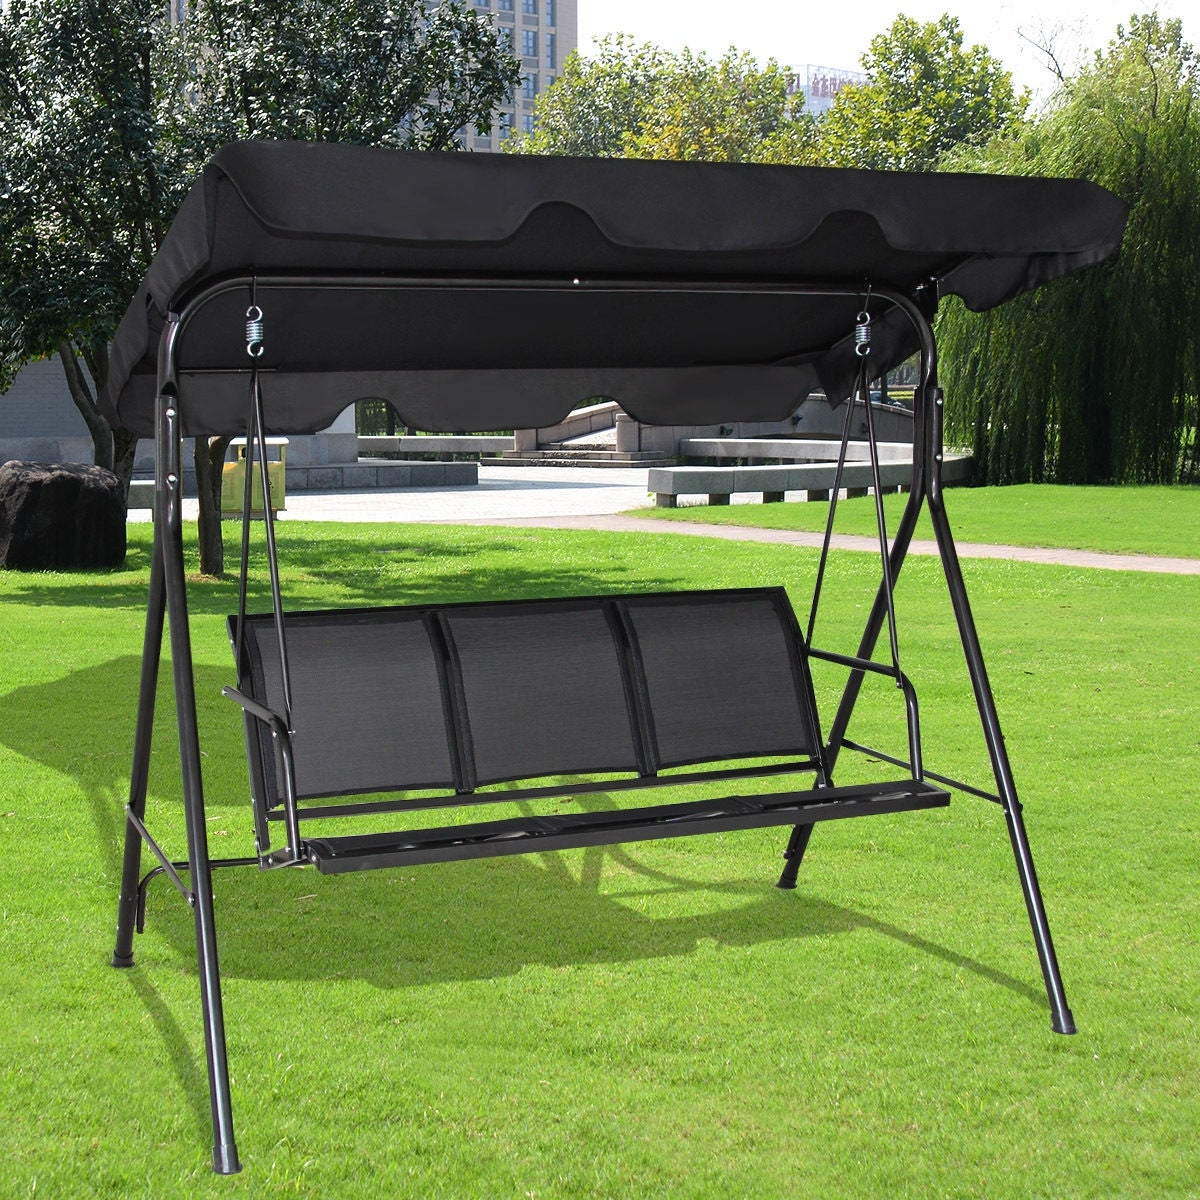 Costway Outdoor Patio Swing Canopy 3 Person Chair Hammock Black